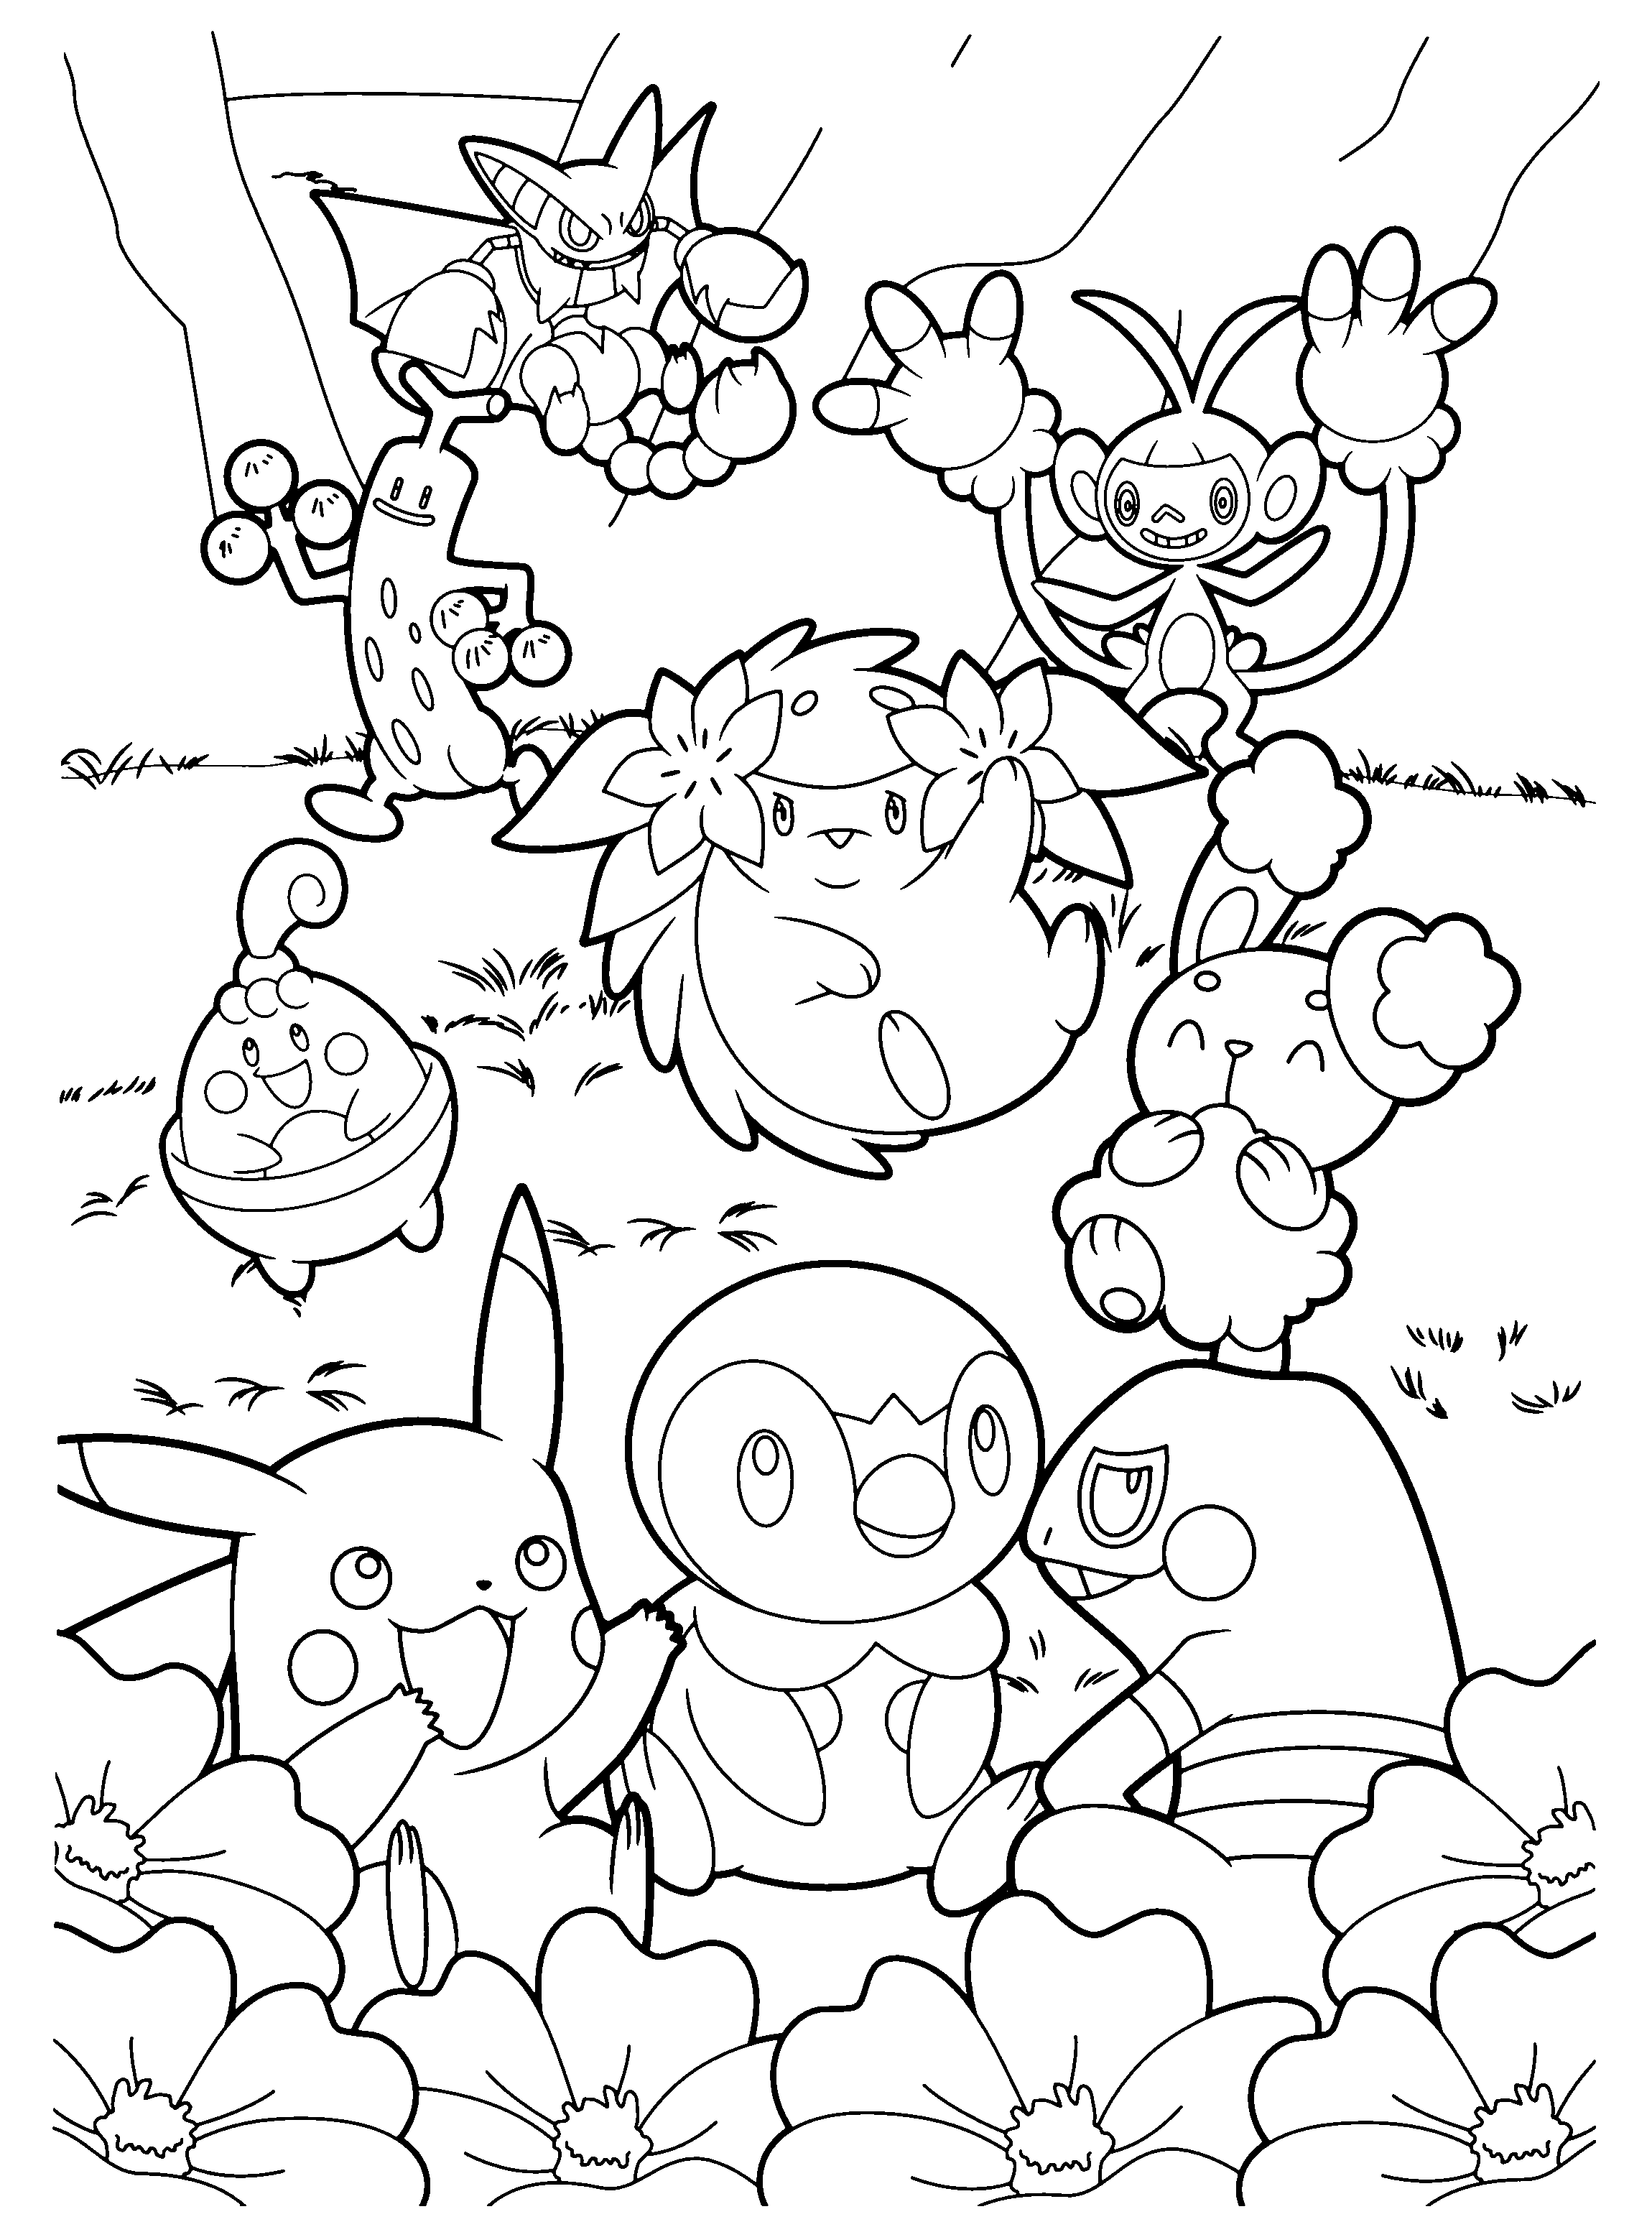 pearl jam coloring pages - photo#19